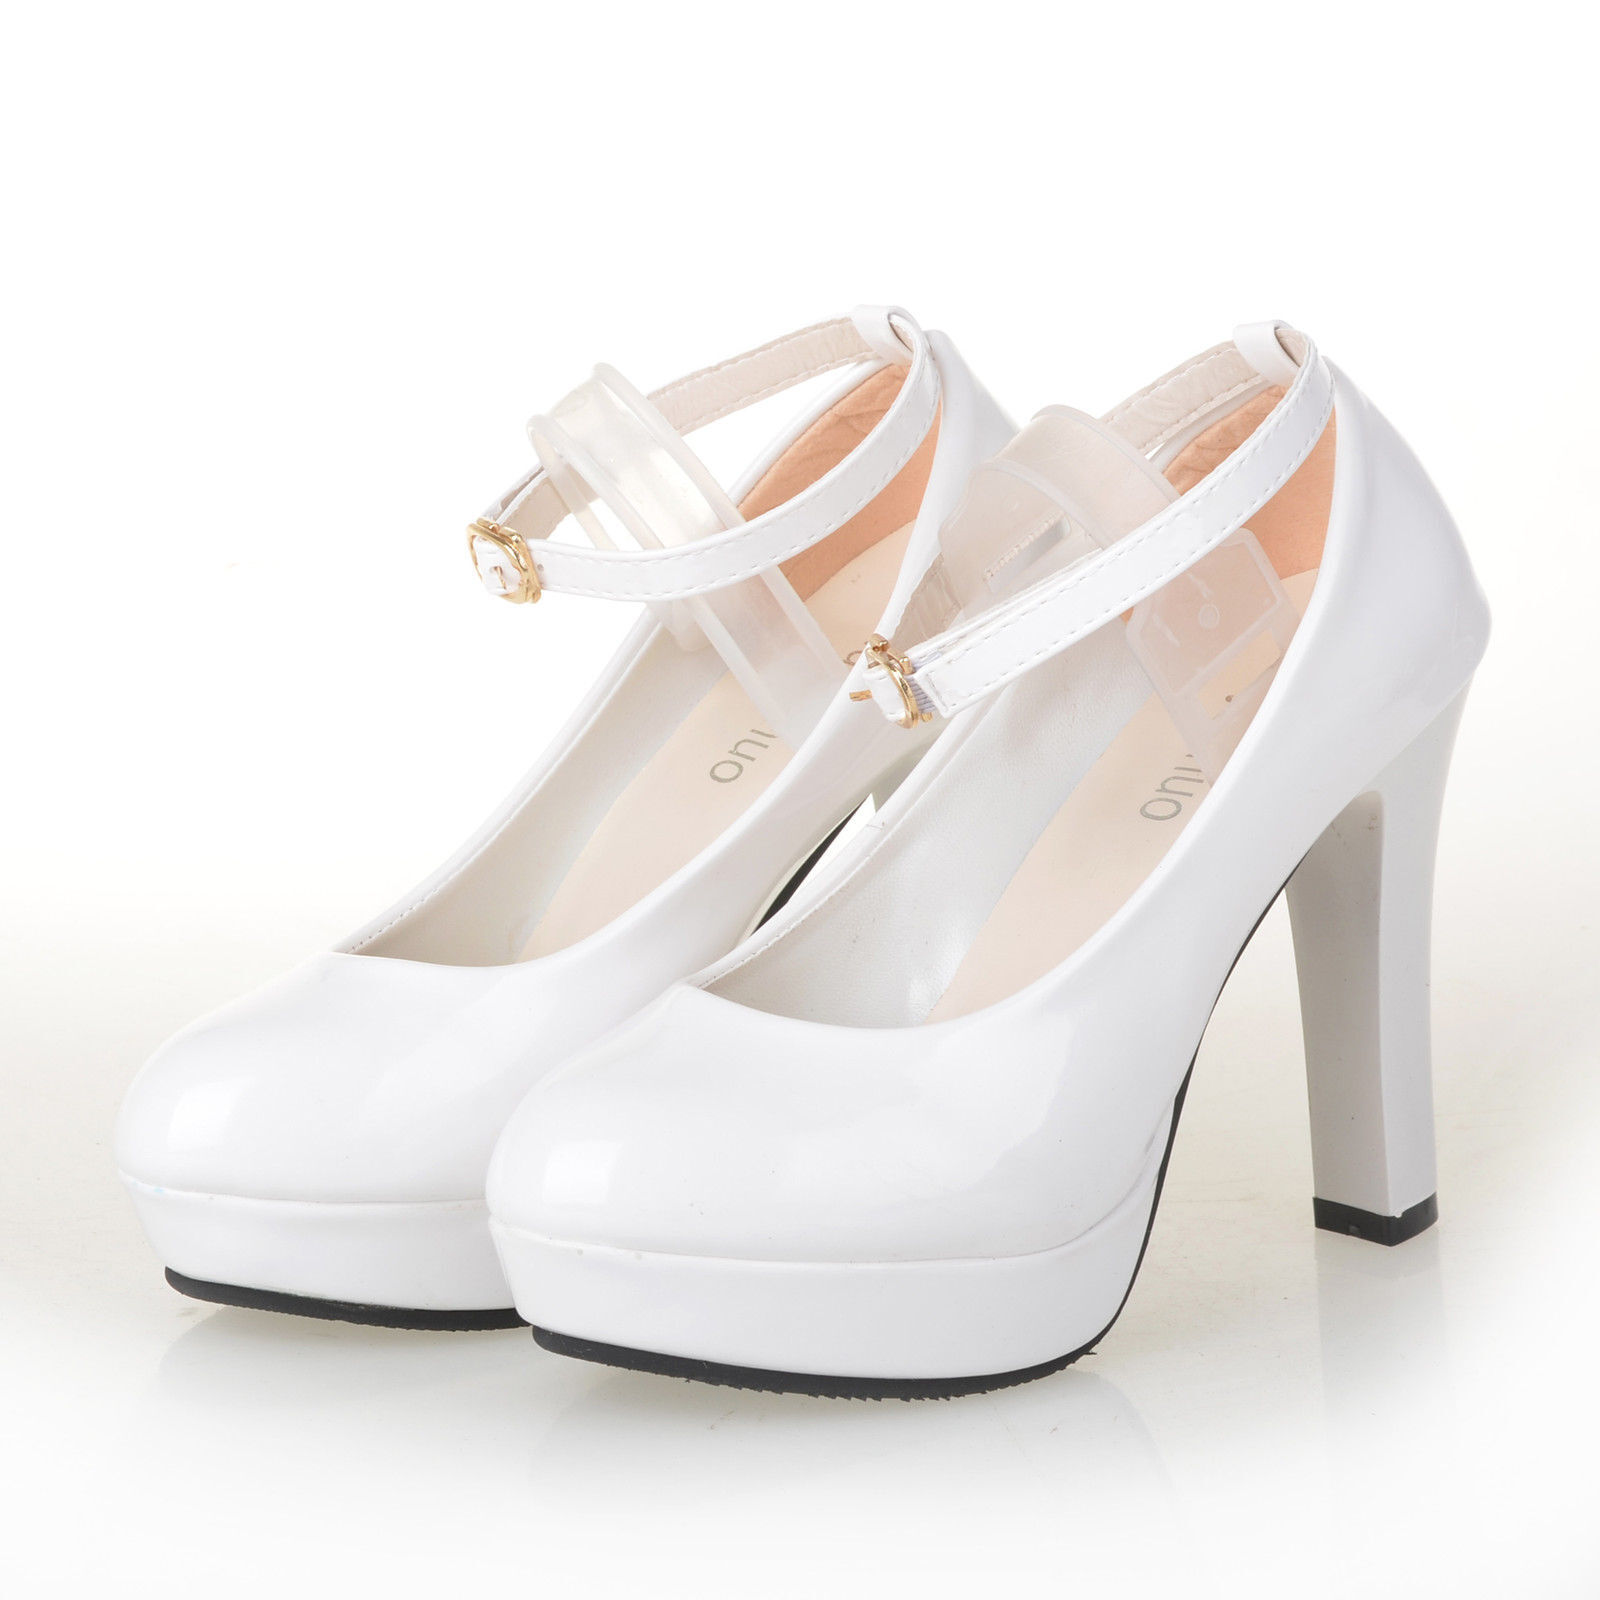 White Kitten Heel Bridal Shoes